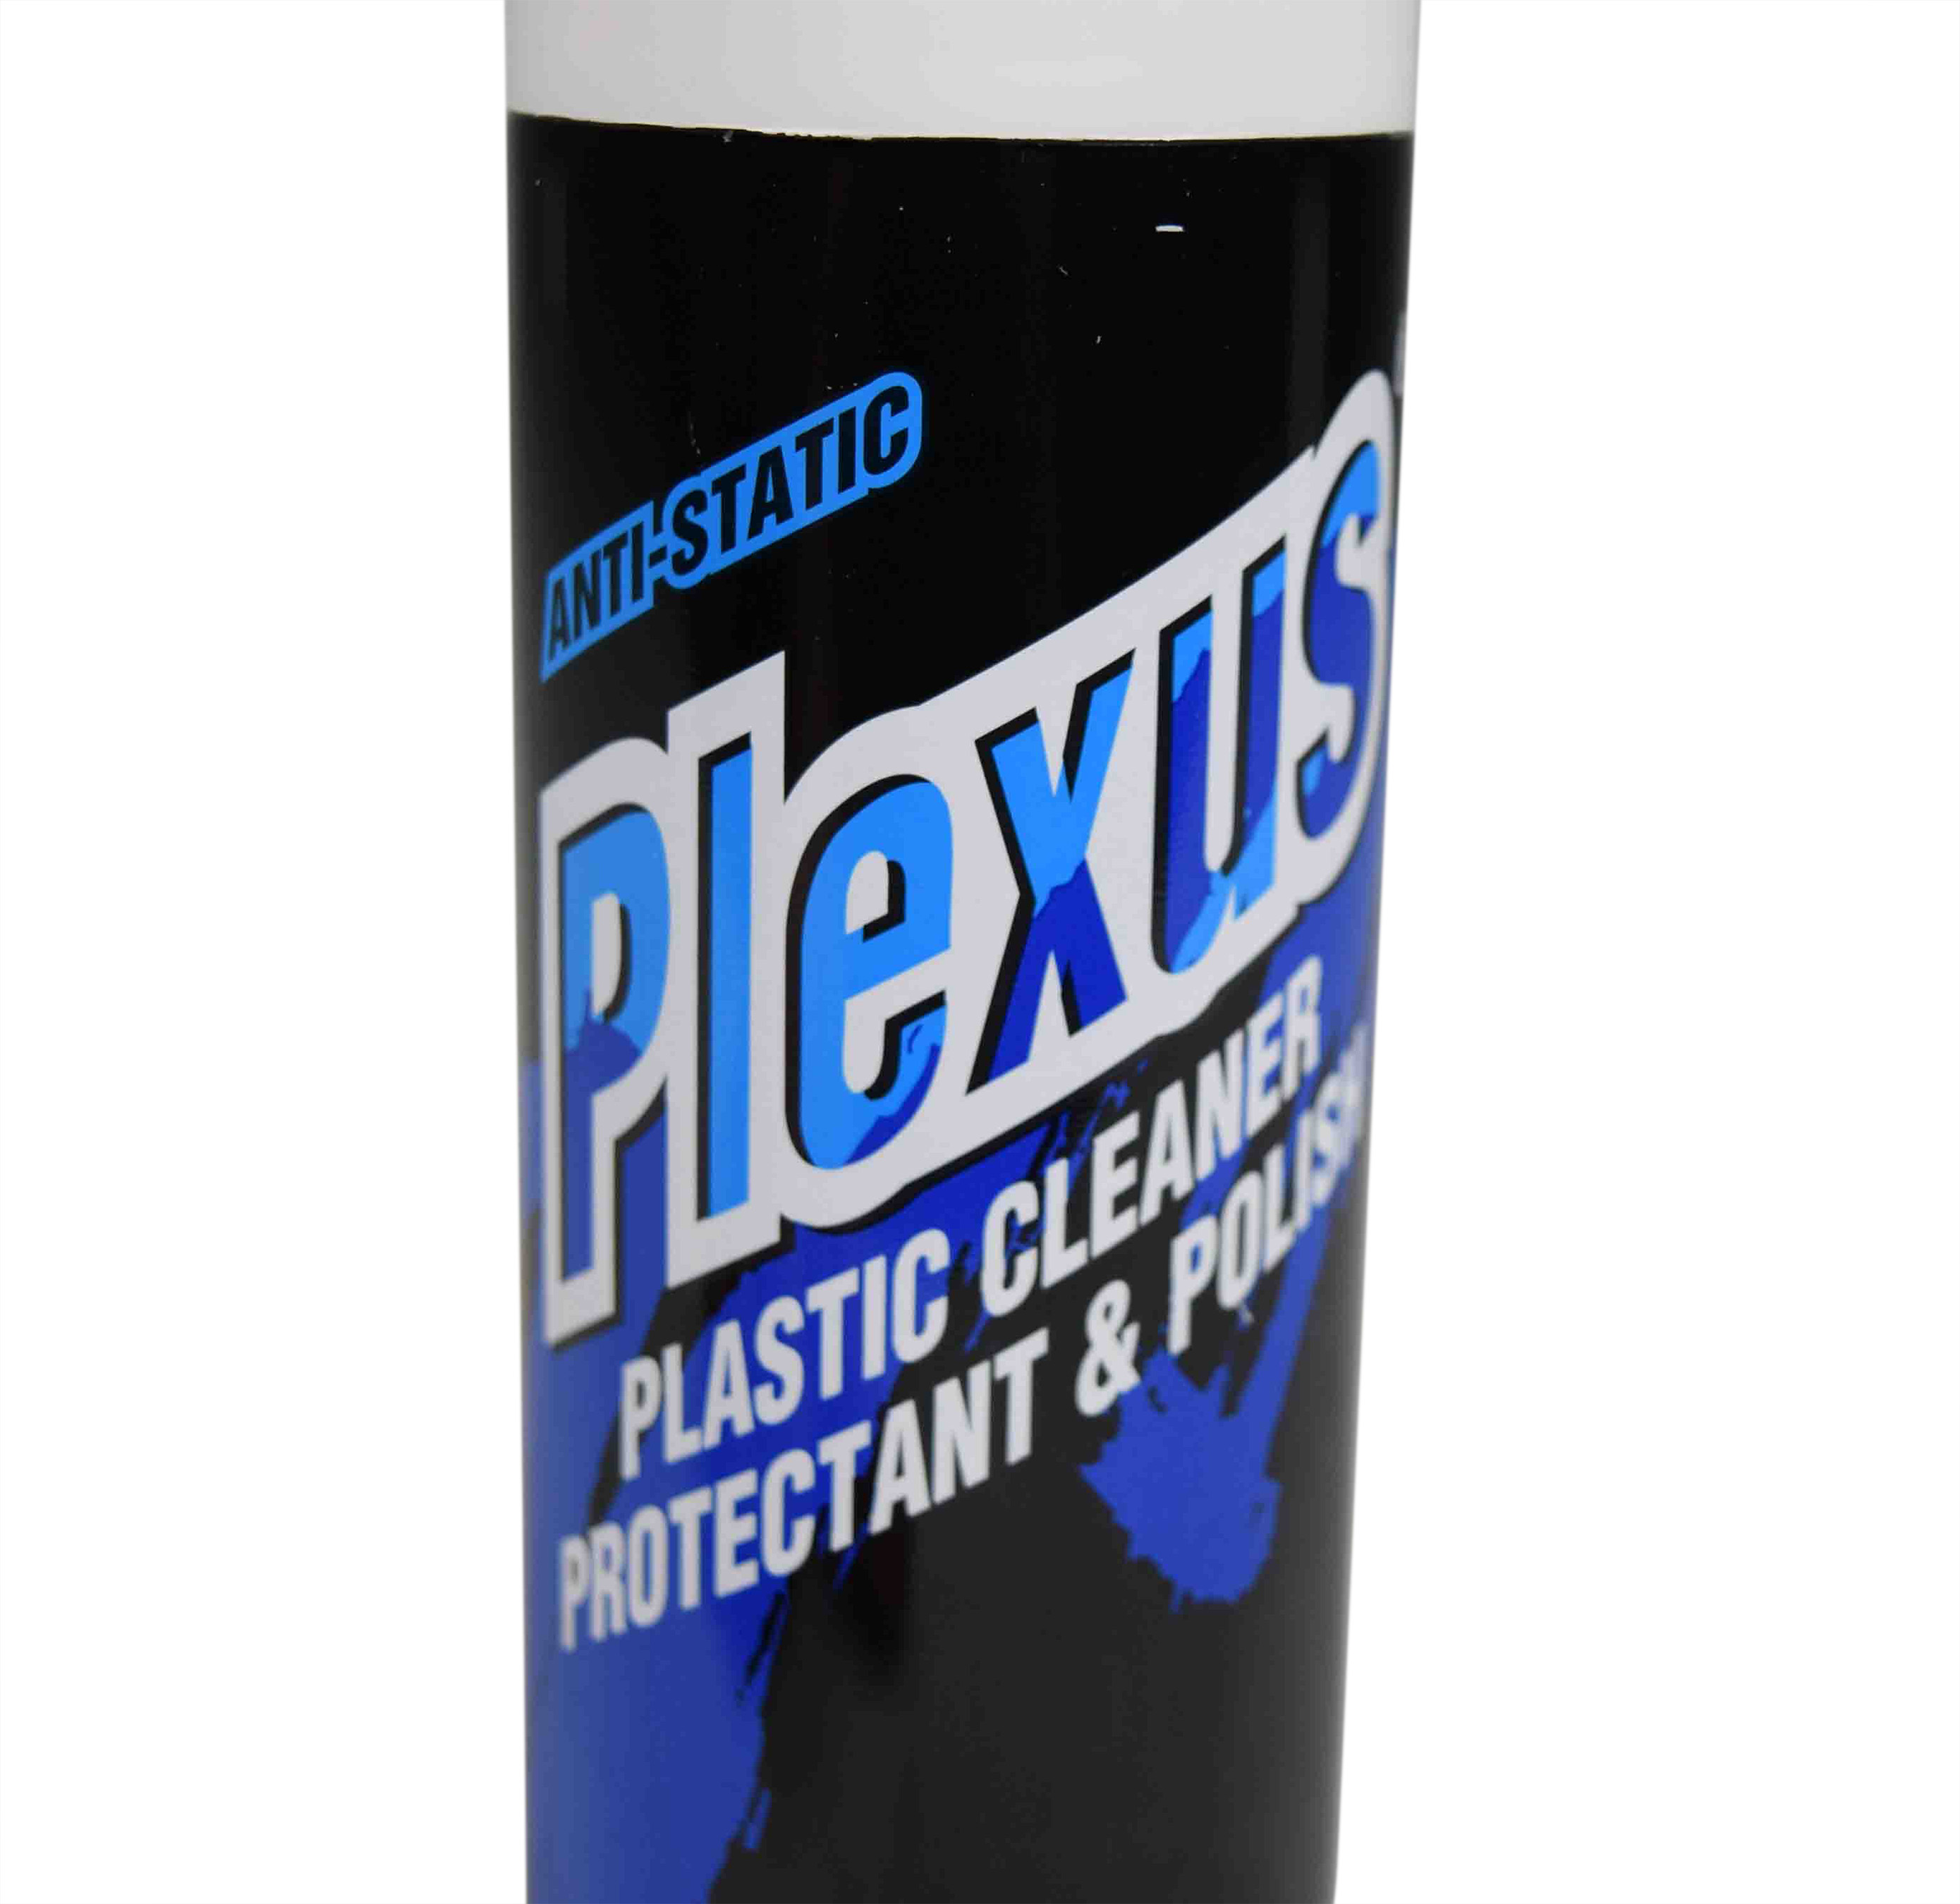 Plexus-Plastic-Cleaner-Protectant-Polish-7oz-Can-5-Pack-MADE-In-the-USA-image-3